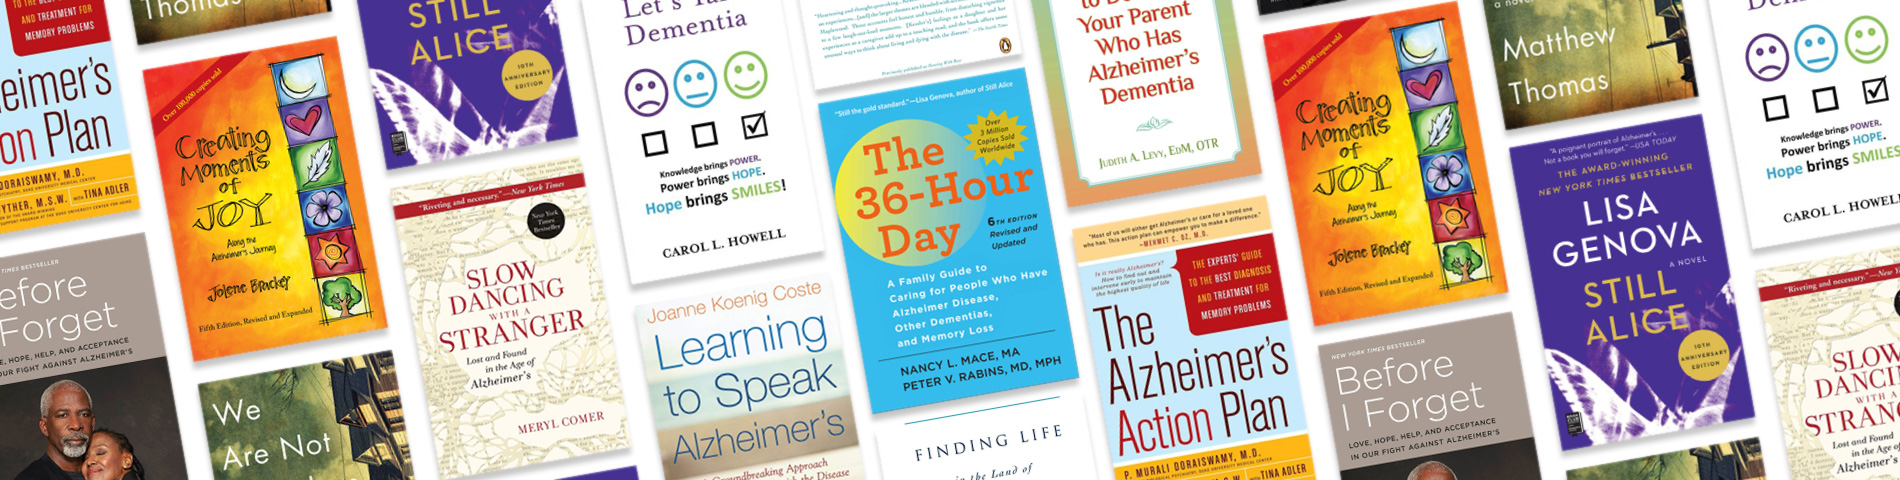 Books to Read about Alzheimer's and Dementia for Caregivers